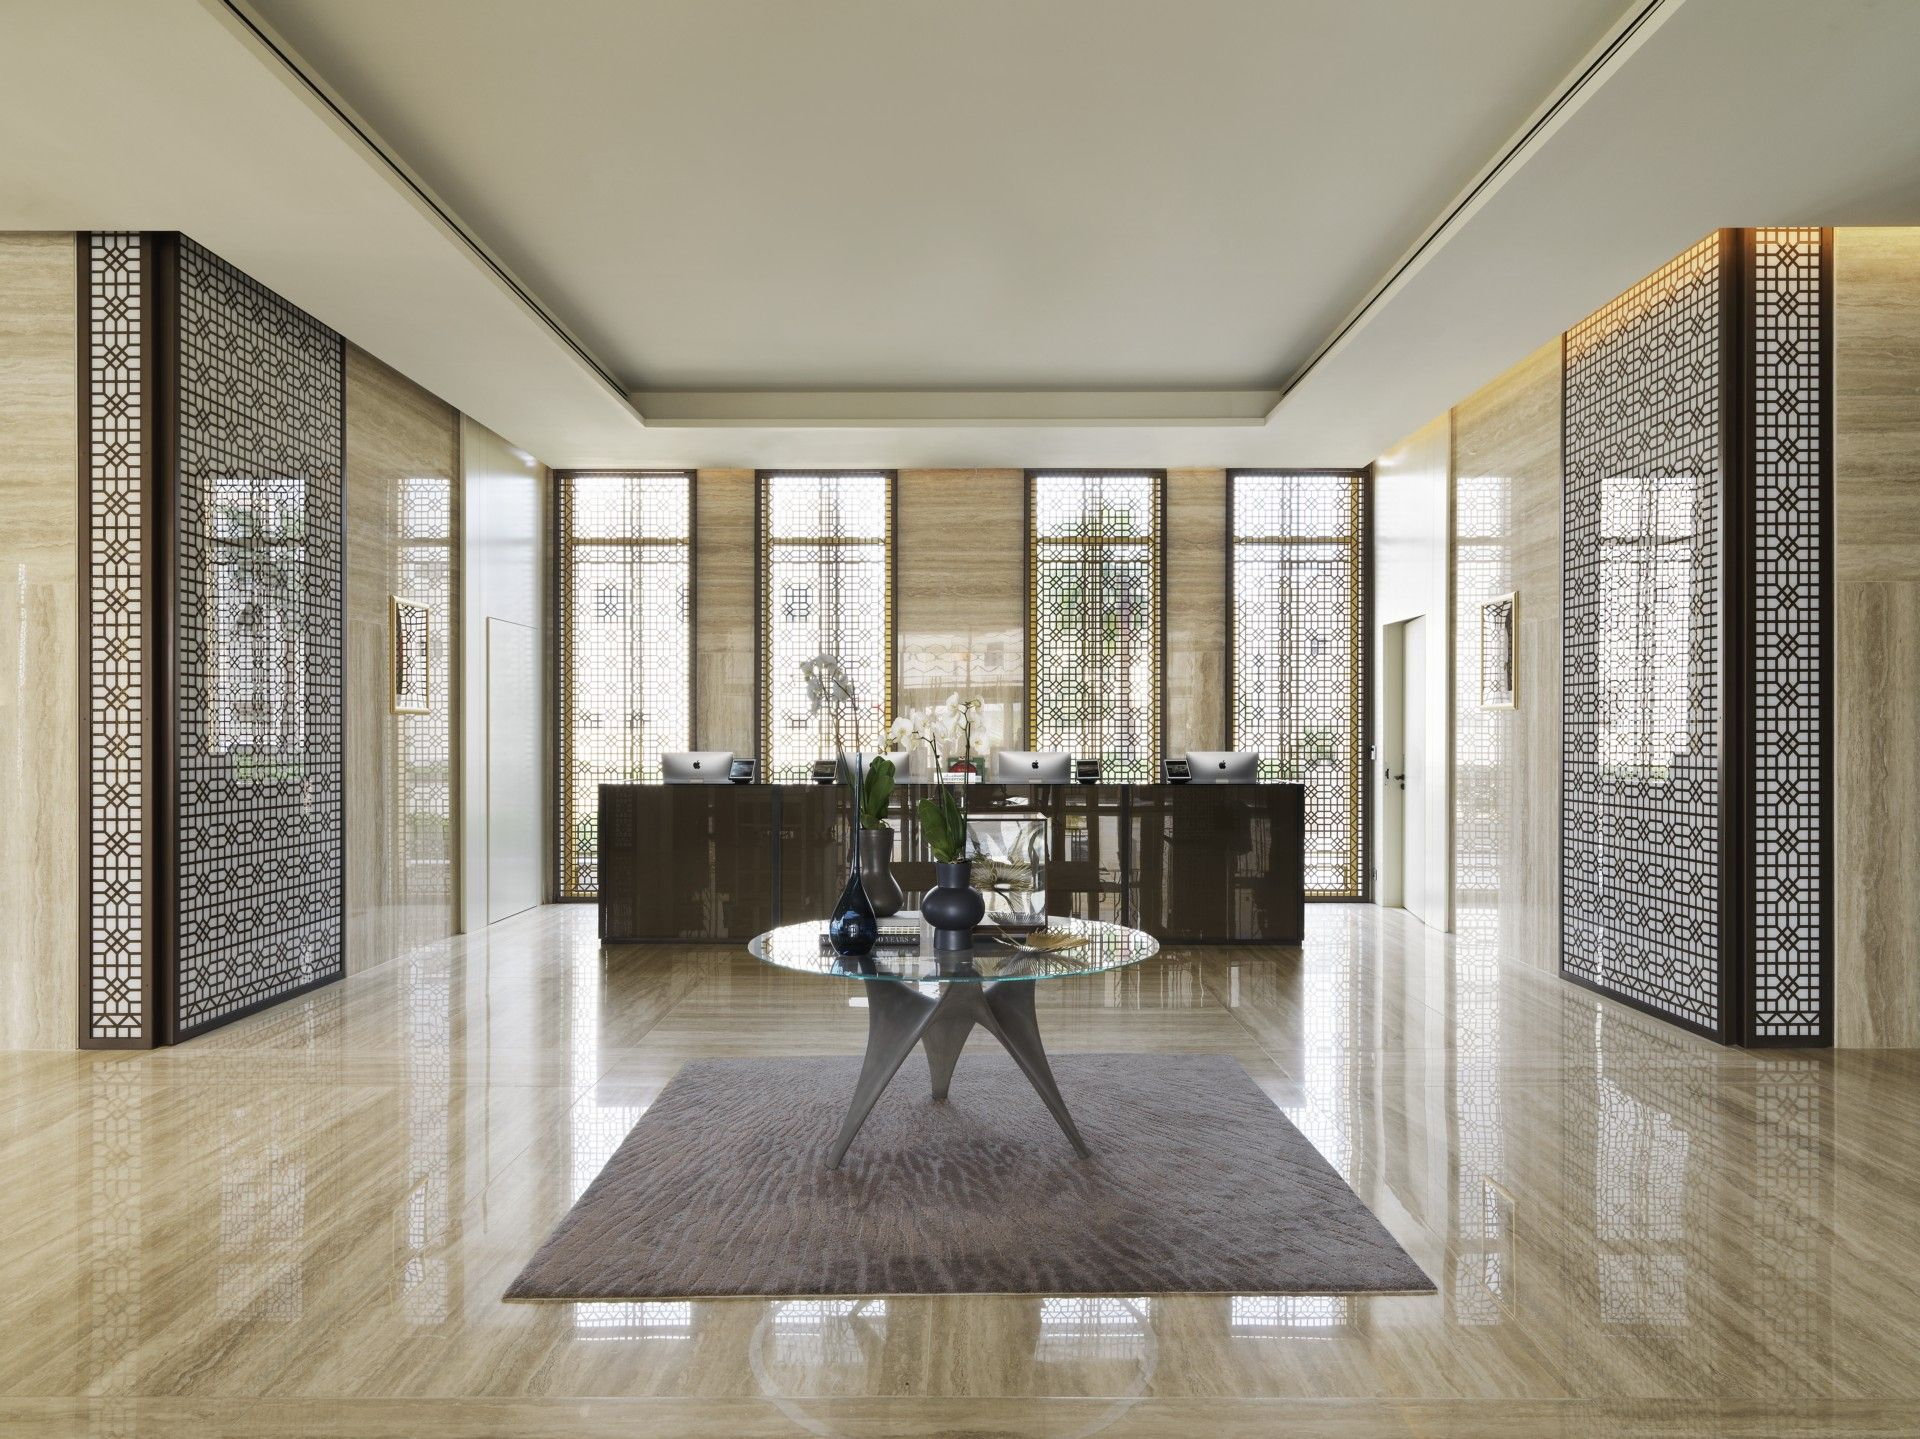 10 Italian Interior Designers You Need To Know italian interior designer 10 Italian Interior Designers You Need To Know matteo